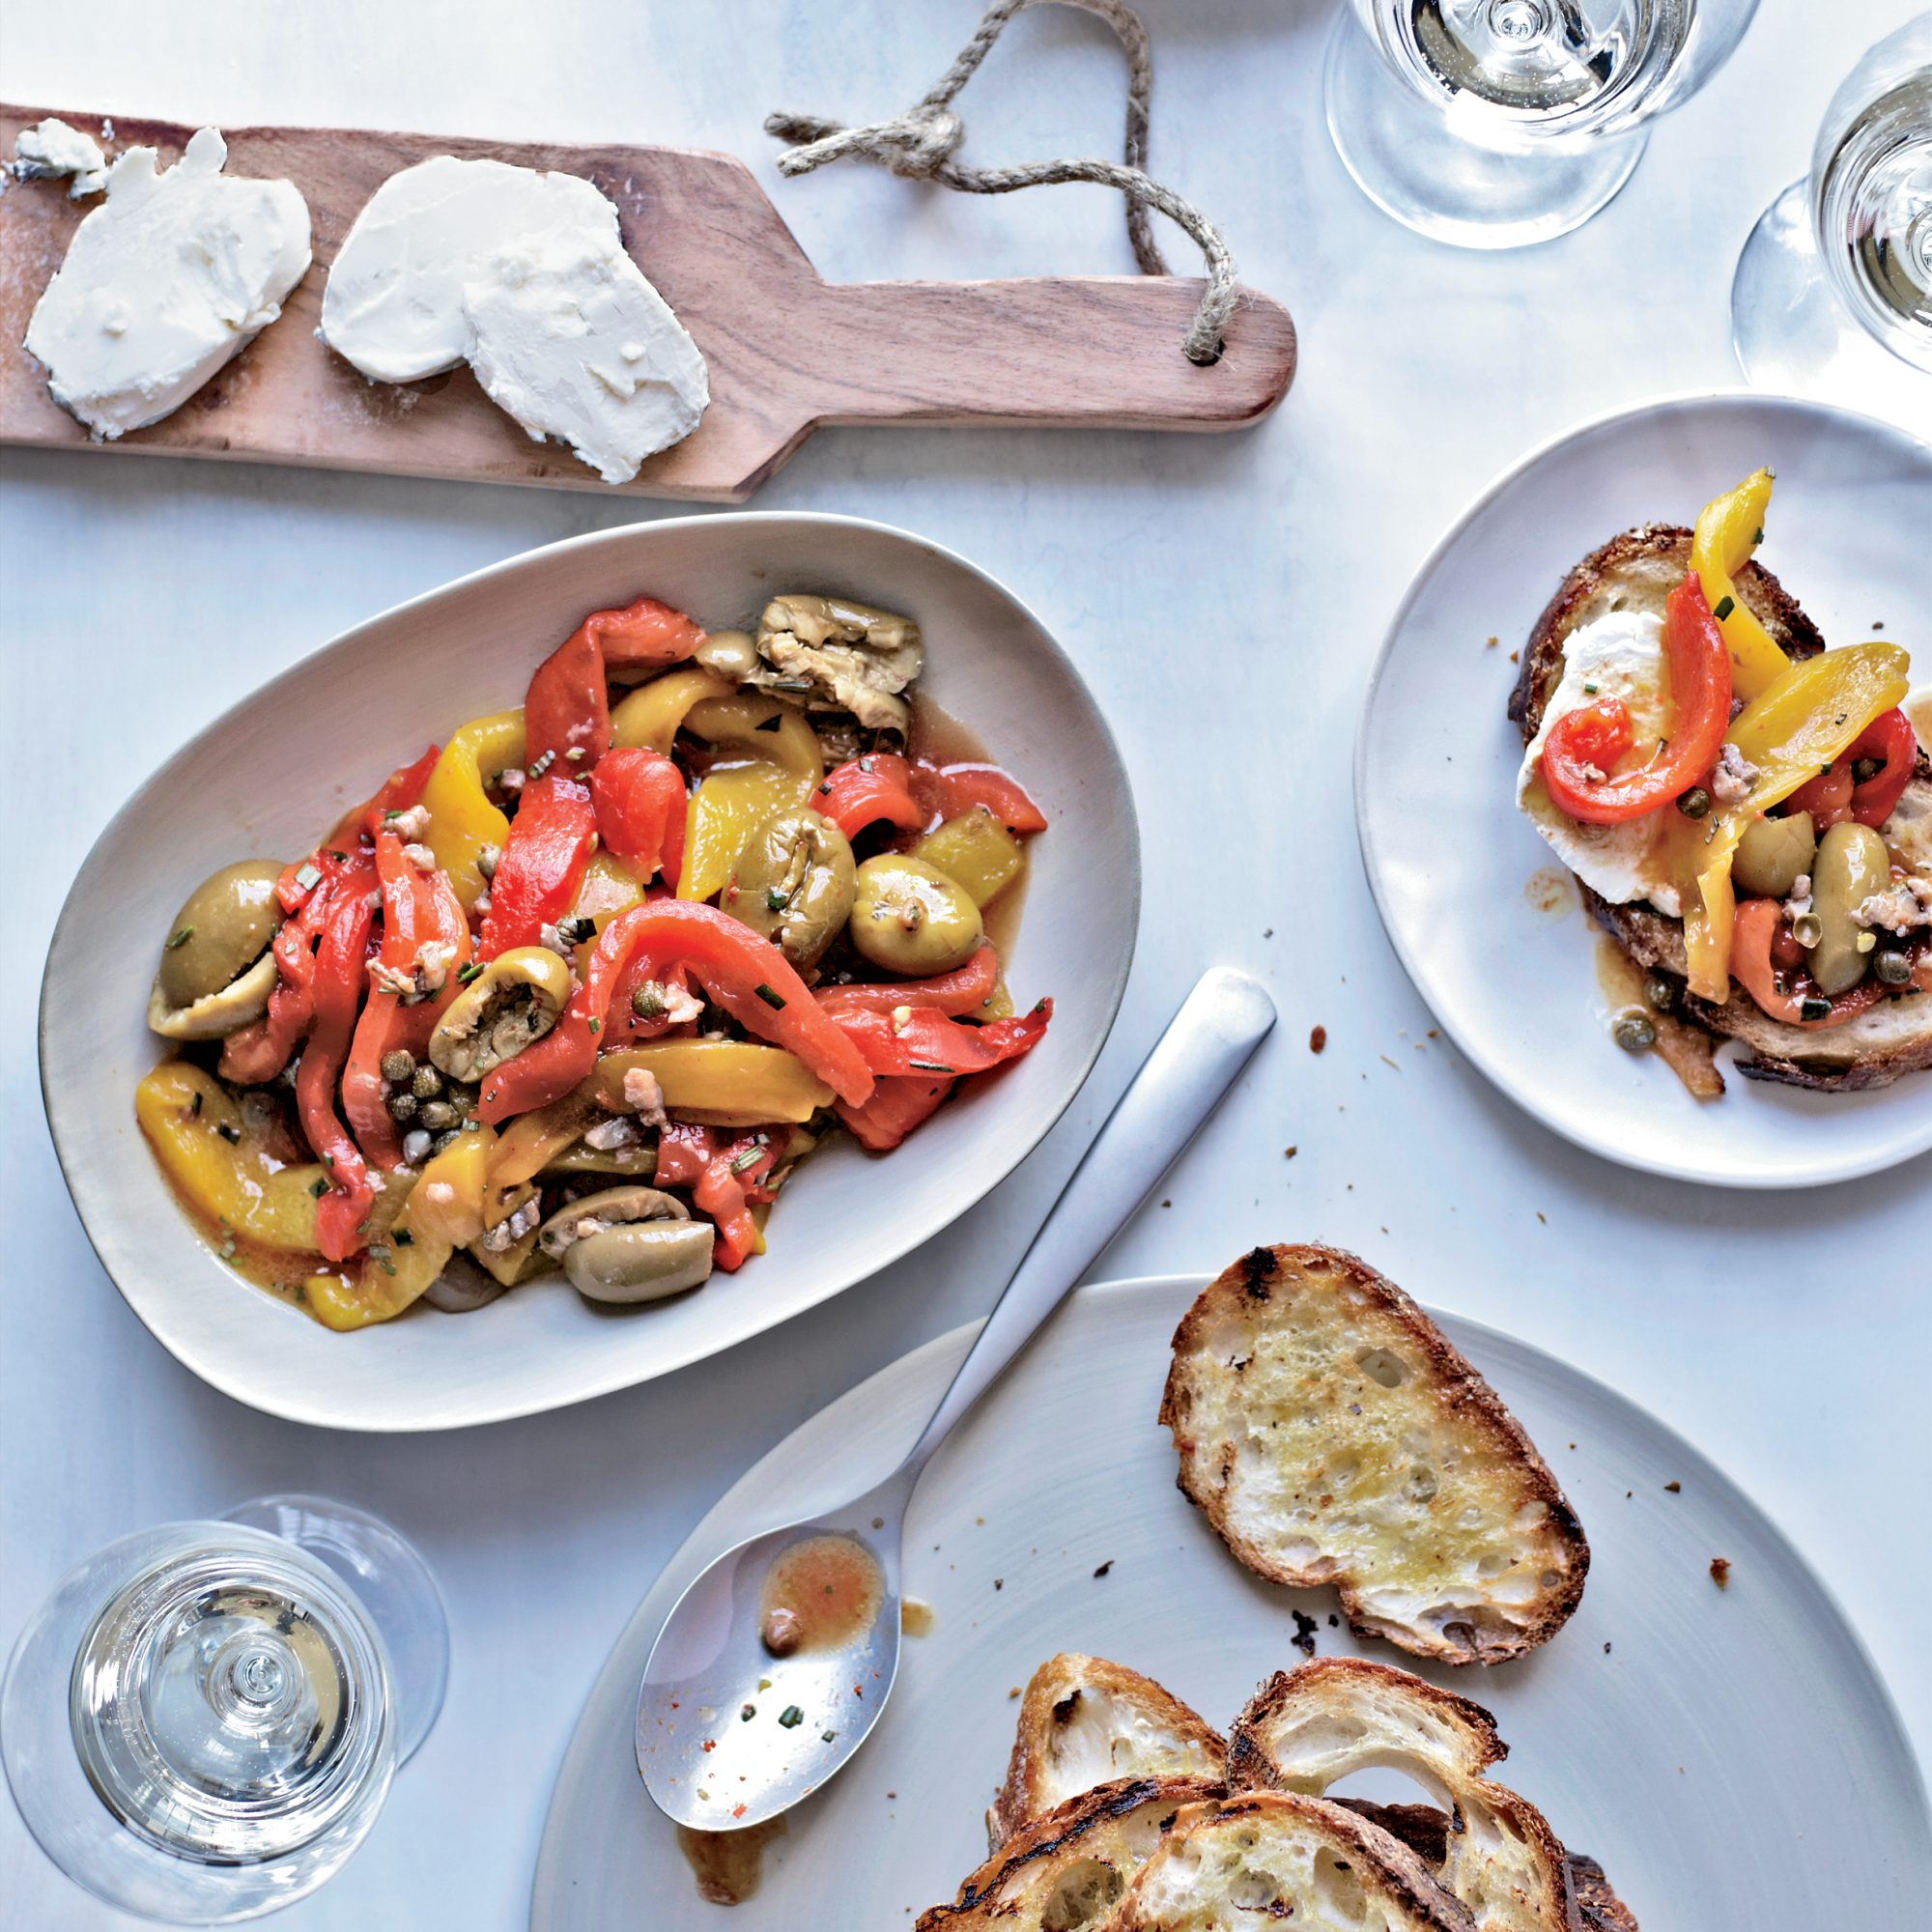 Anchovy and Roasted-Pepper Salad with Goat Cheese